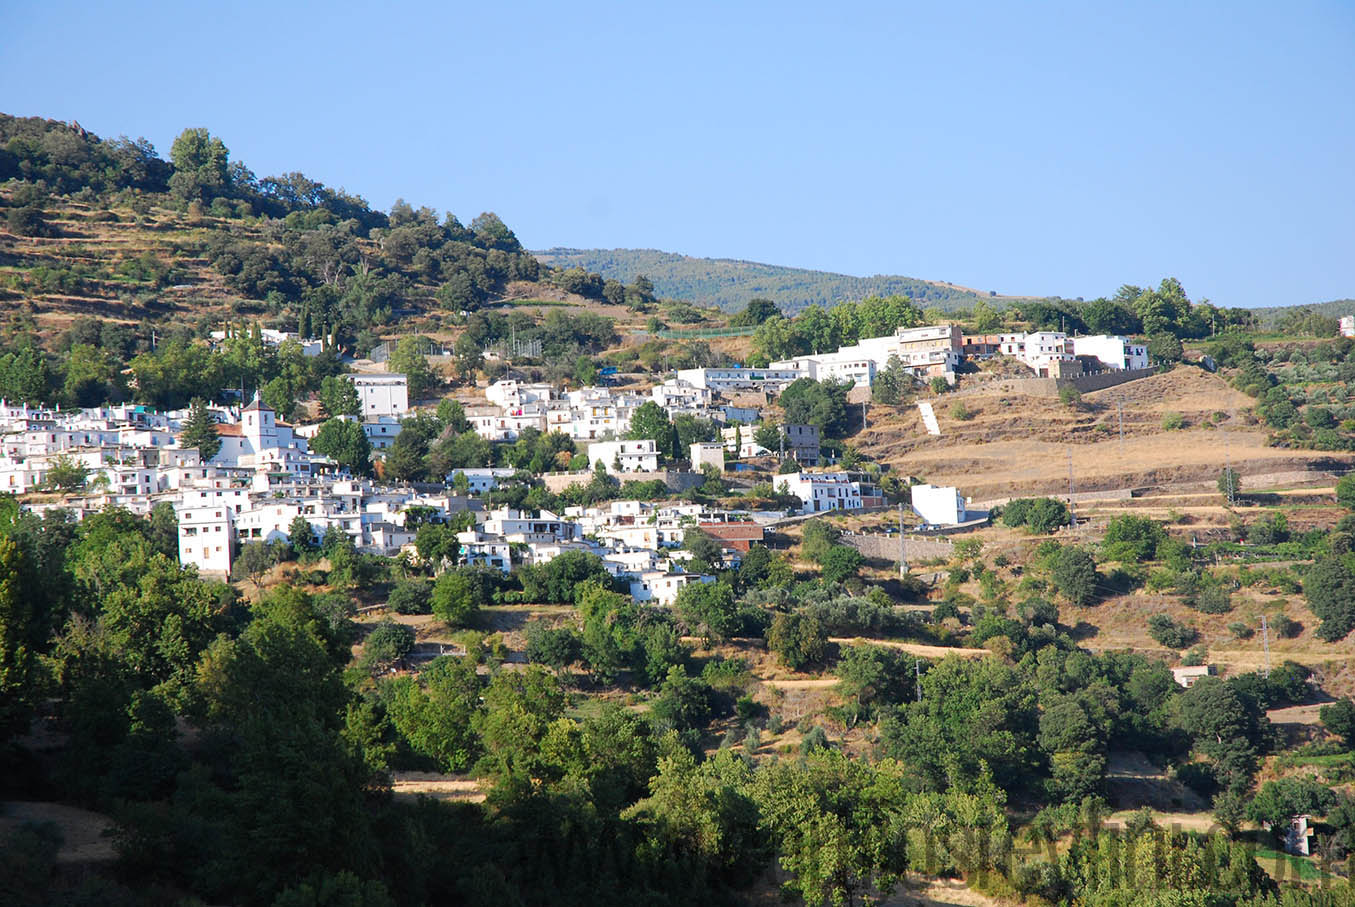 Villages nearby